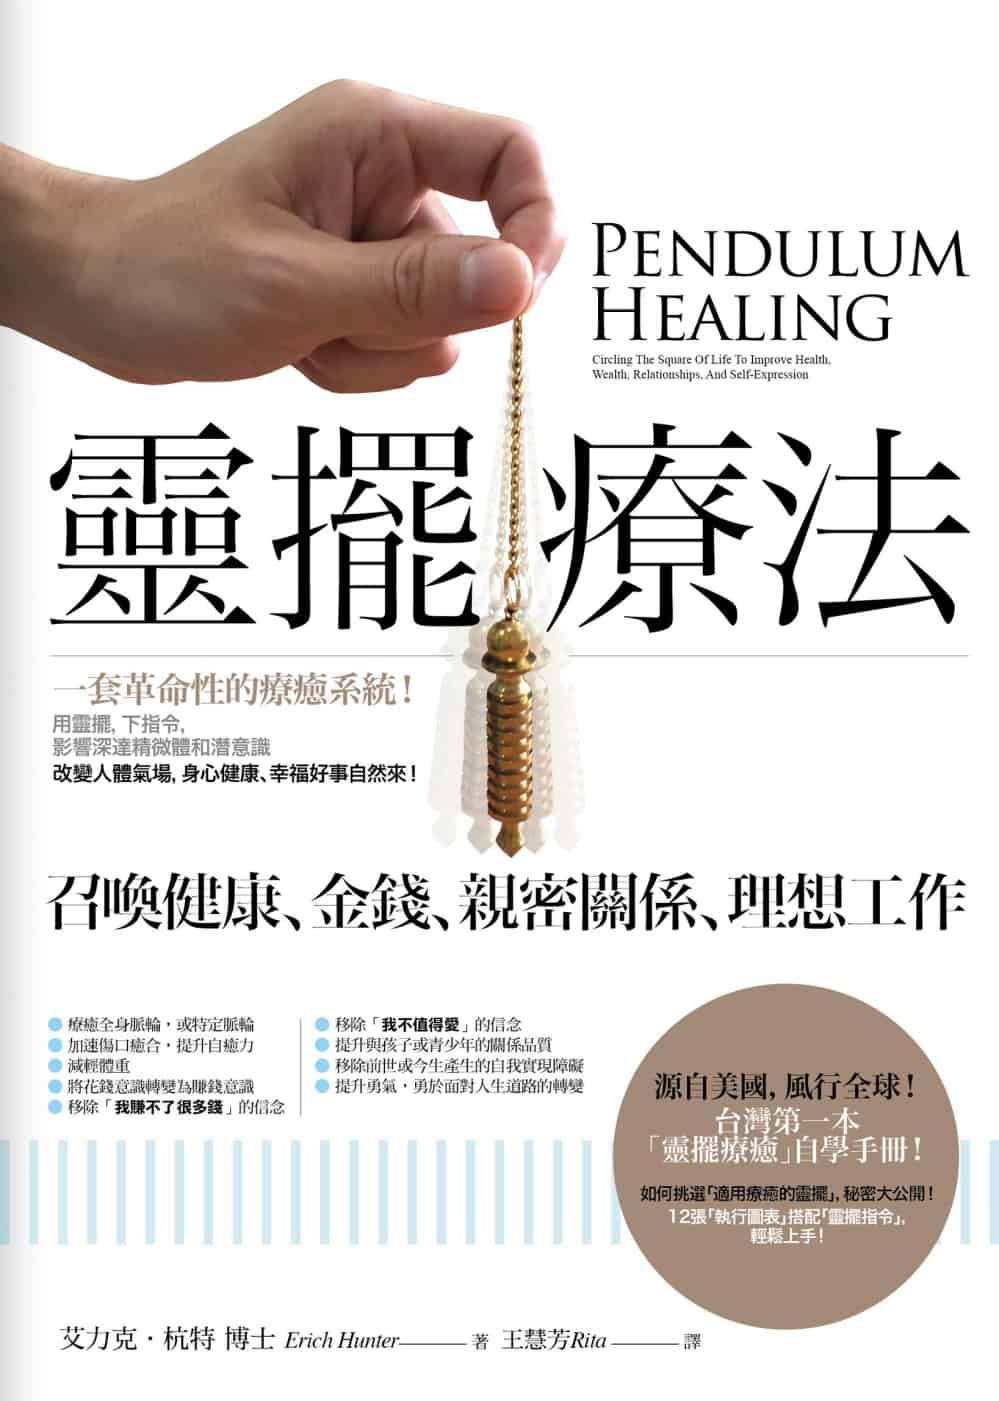 Pendulum therapy call for health, money,-0